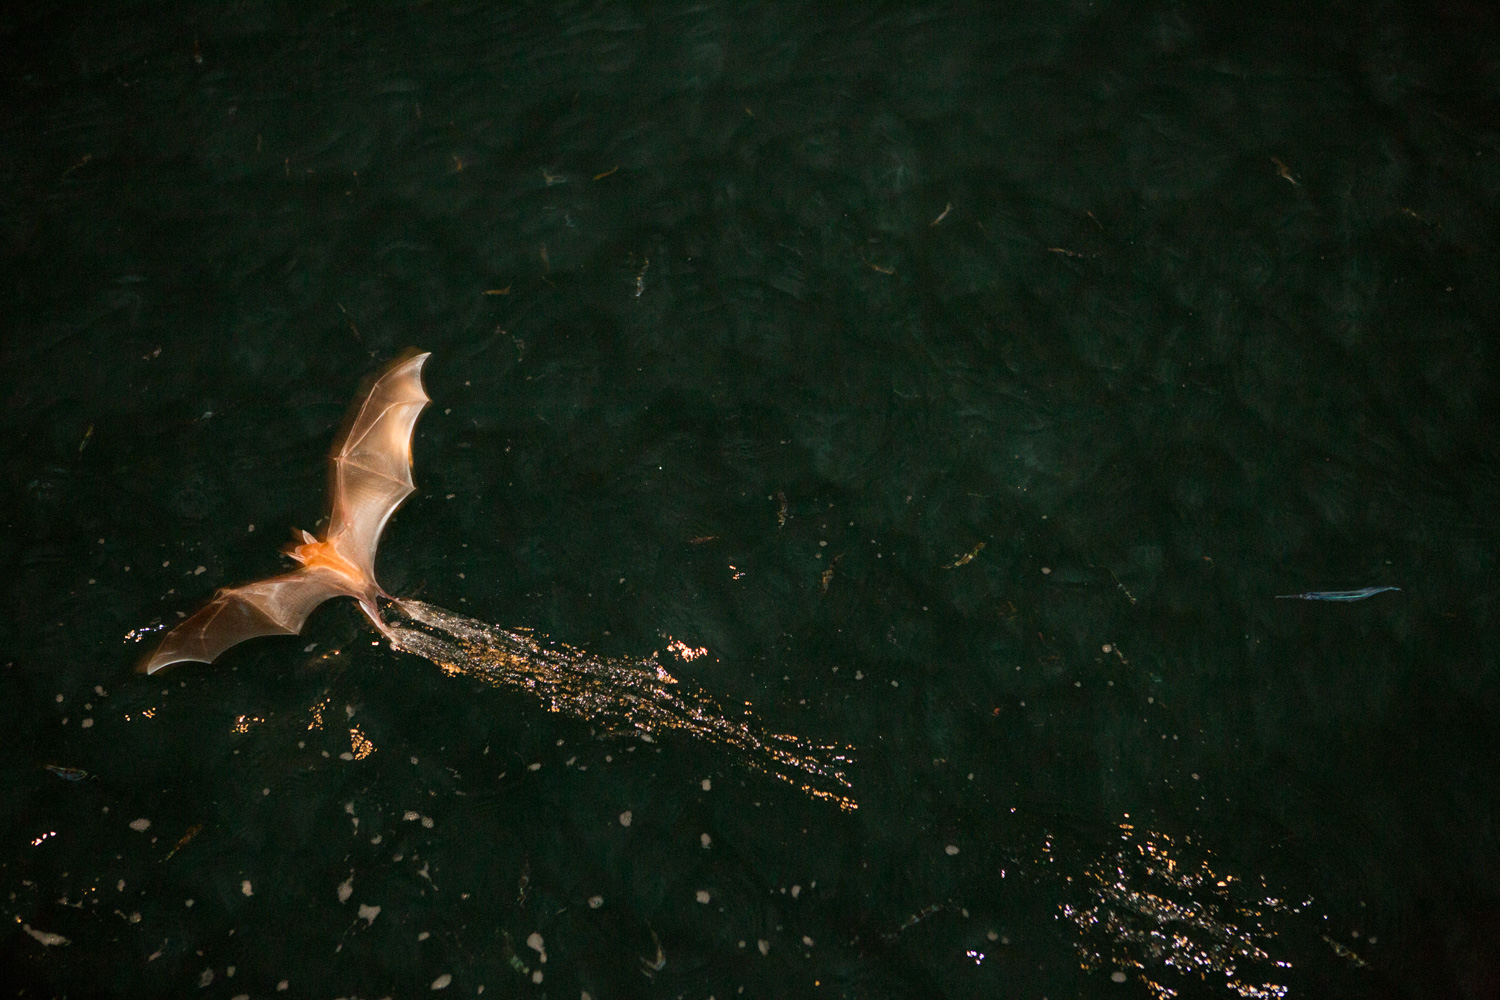 Attracted by a boat's light, bats fly close to the water and skim the surface in search of fish.